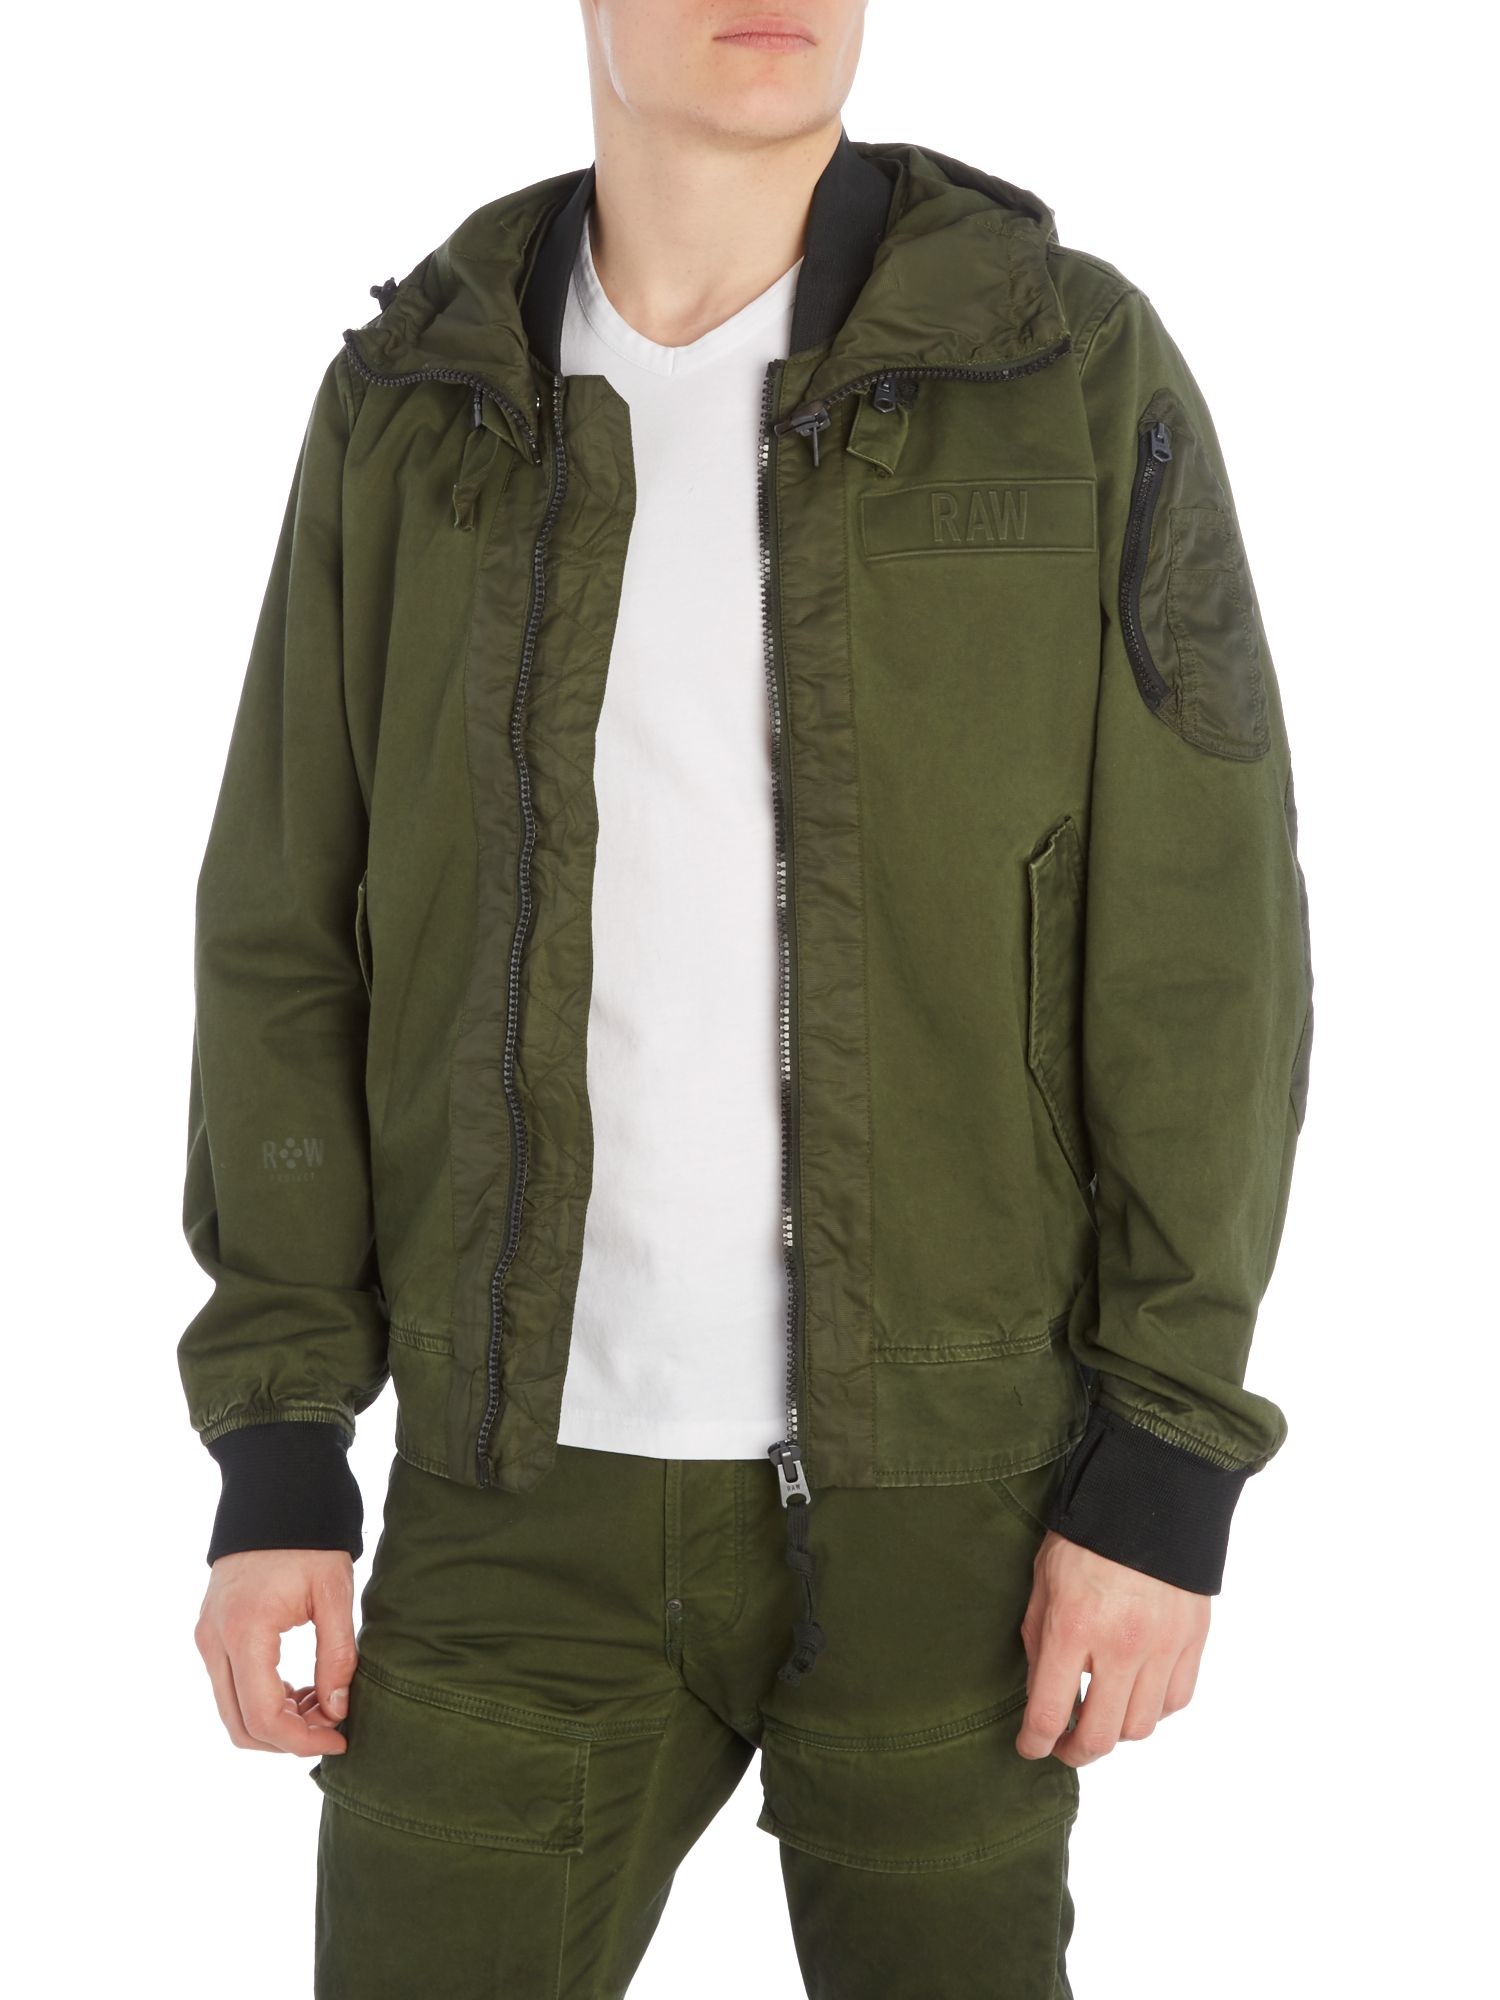 g star raw submarine zip through hooded bomber jacket in green for men lyst. Black Bedroom Furniture Sets. Home Design Ideas